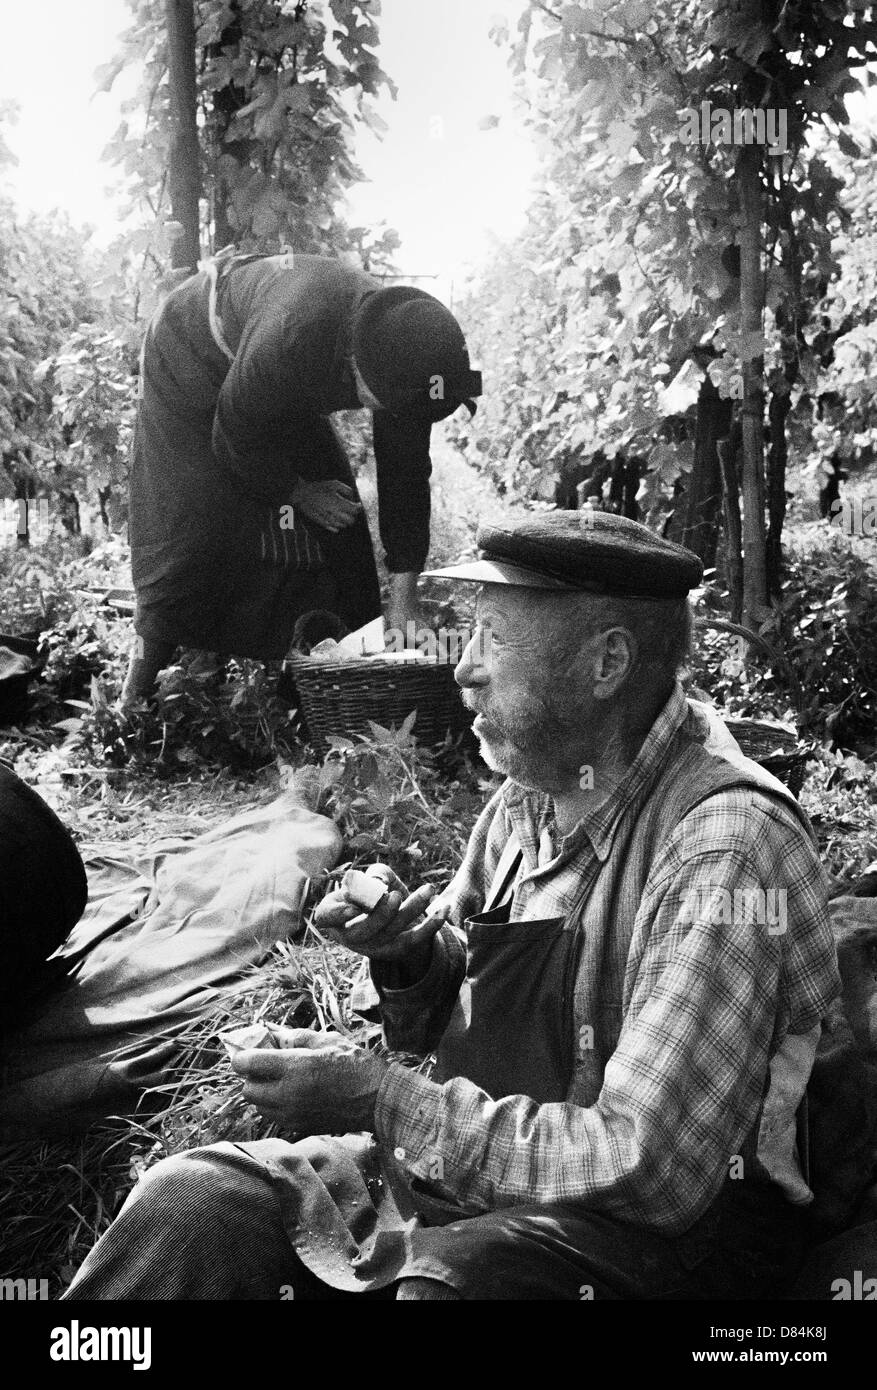 Autumn 1963 senior grape pickers picnicking in vineyard Alsace France Europe - Stock Image